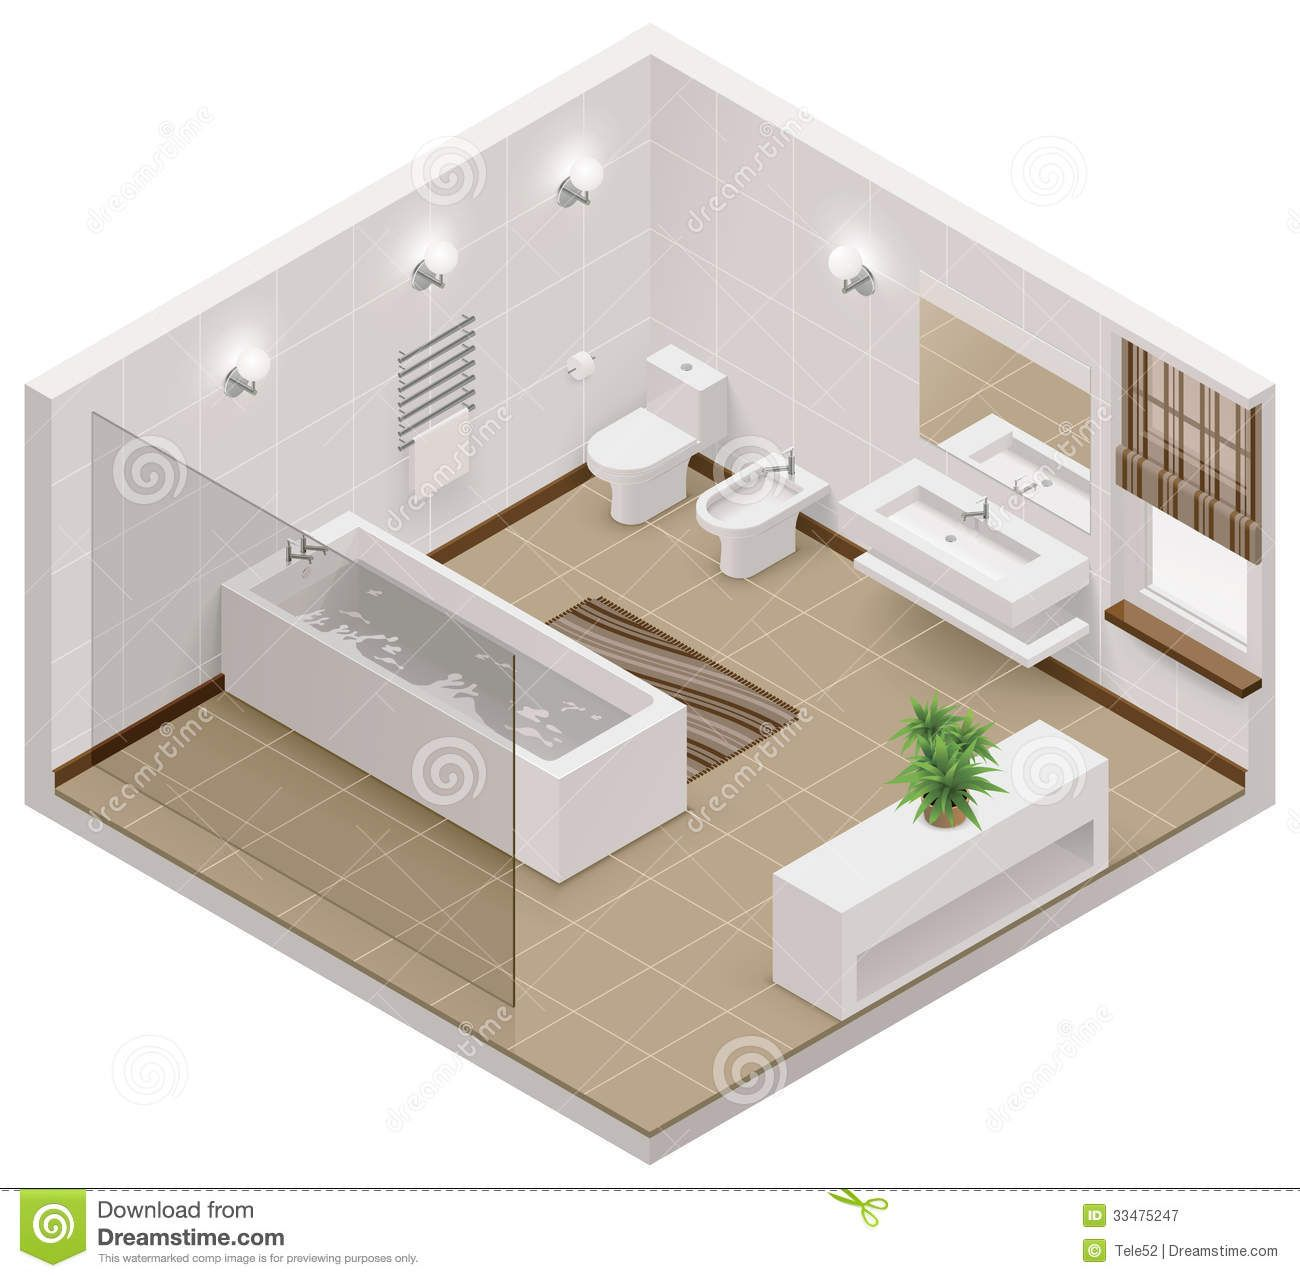 Pin By Meili On Iso Iso Room Layout Planner Living Room Layout Planner Online Interior Design Home design room planner